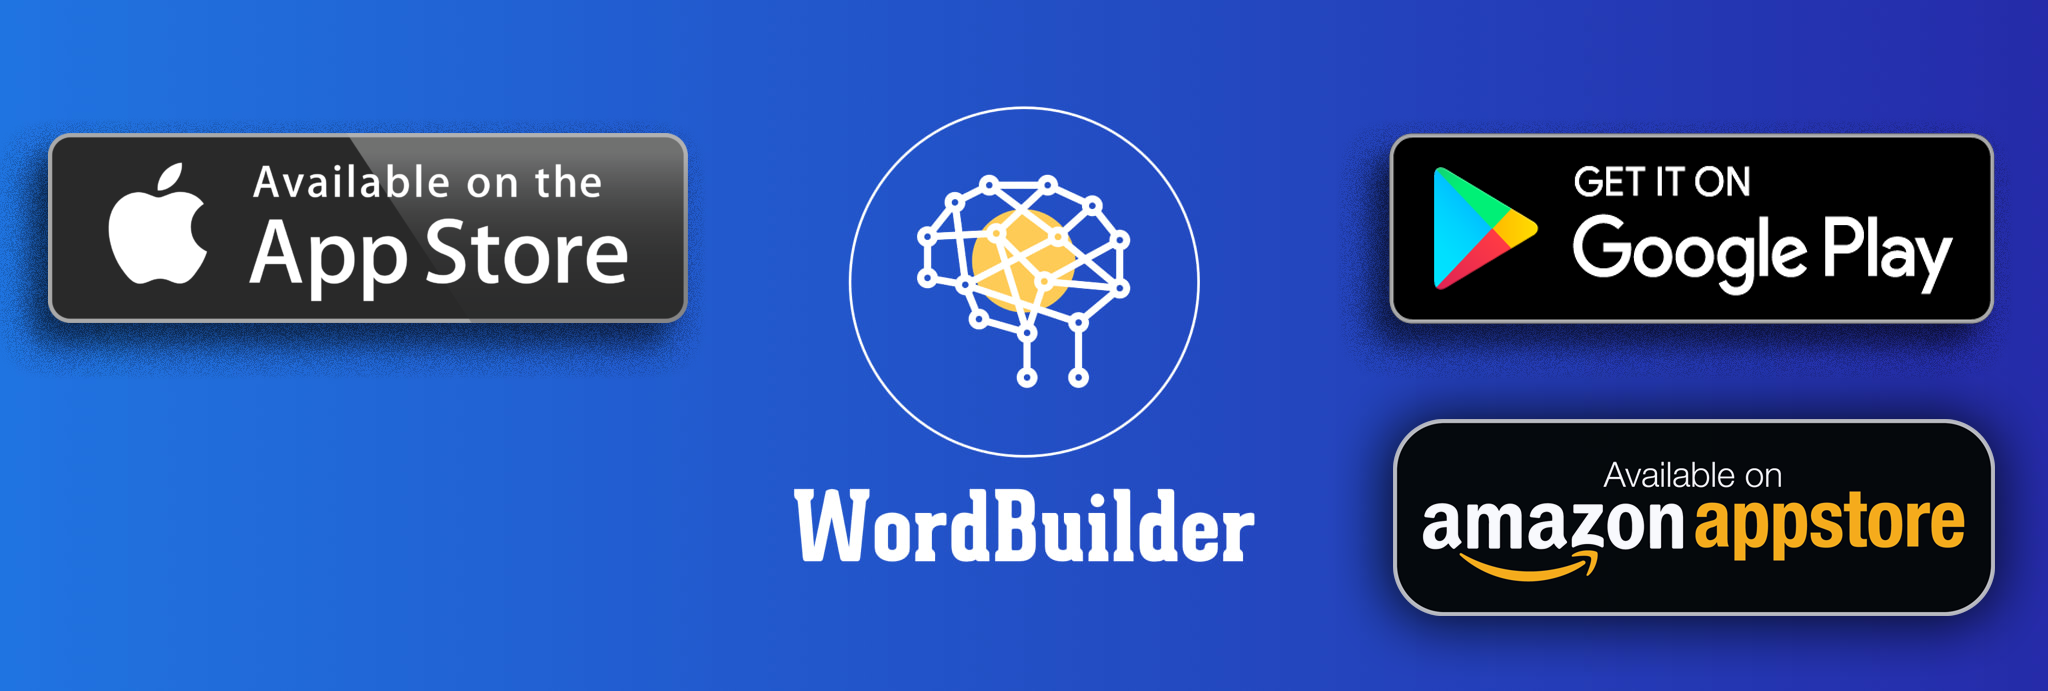 WordBuilder available at the Apple App Store, the Google Play Store & Amazon Store.